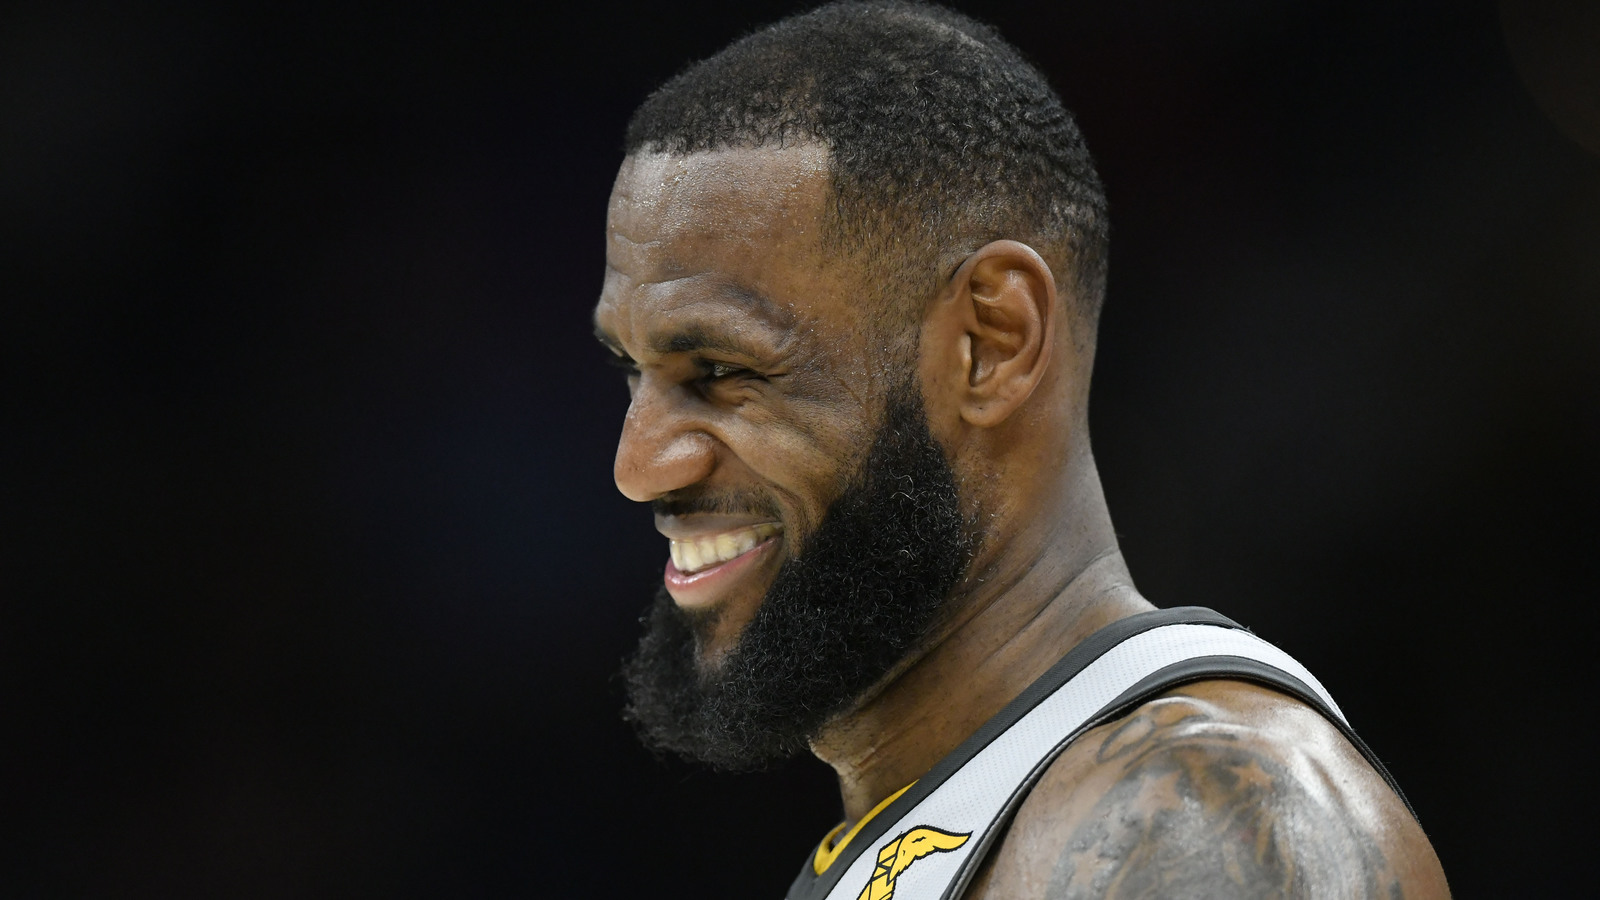 Cavs' LeBron James Doubles Down On Laura Ingraham Comments